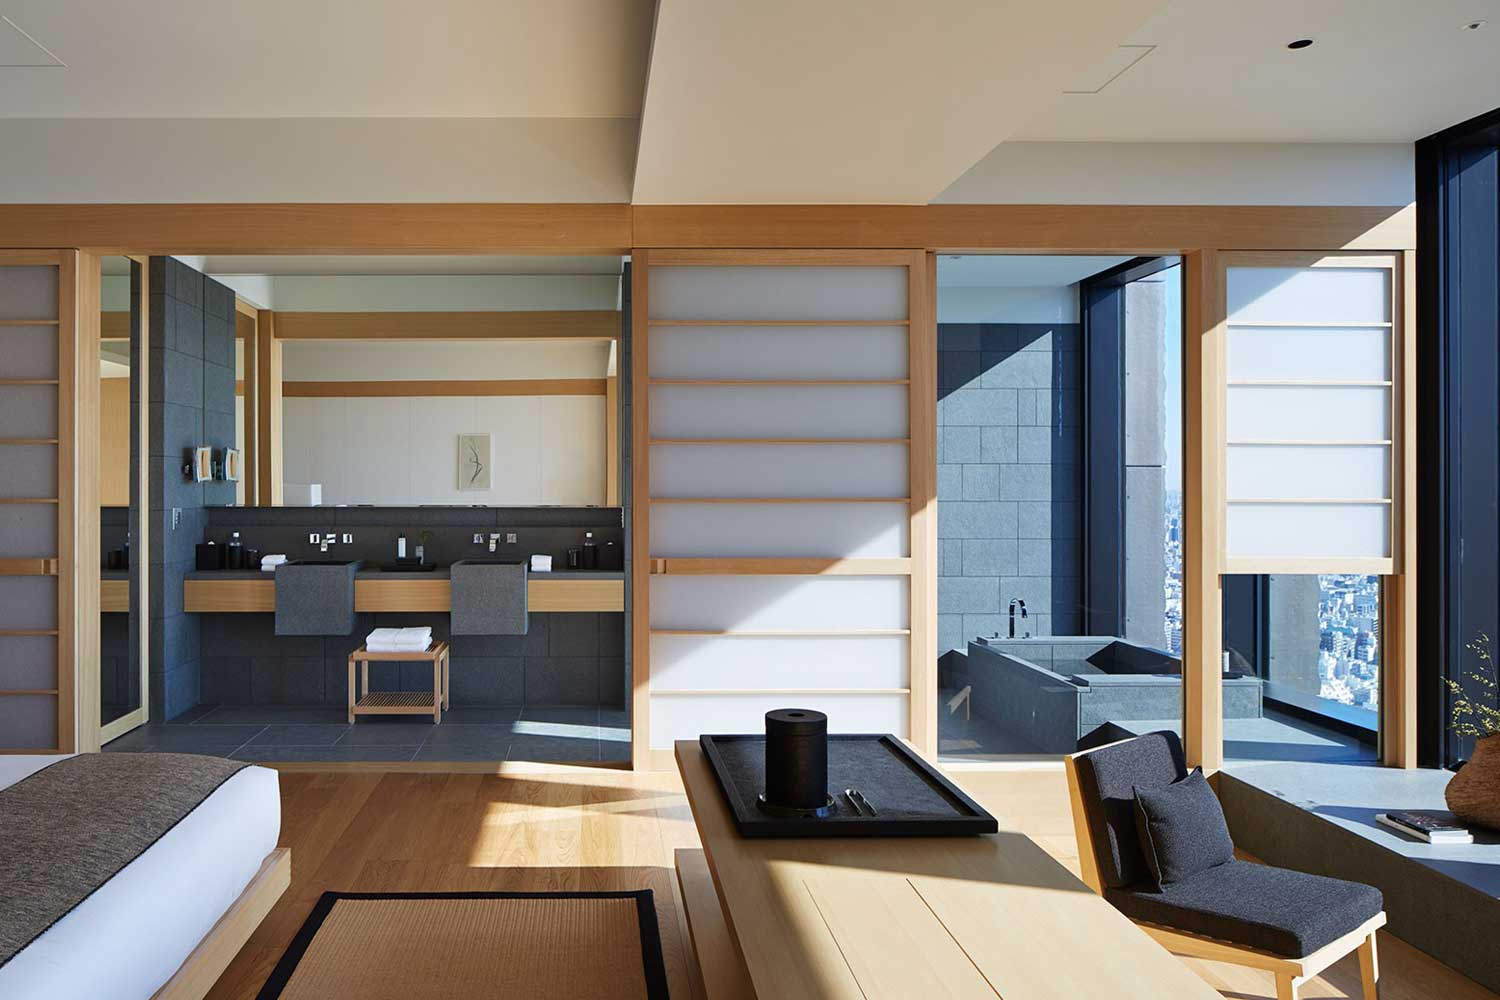 Aman Tokyo A Secluded Retreat In The Middle Of City